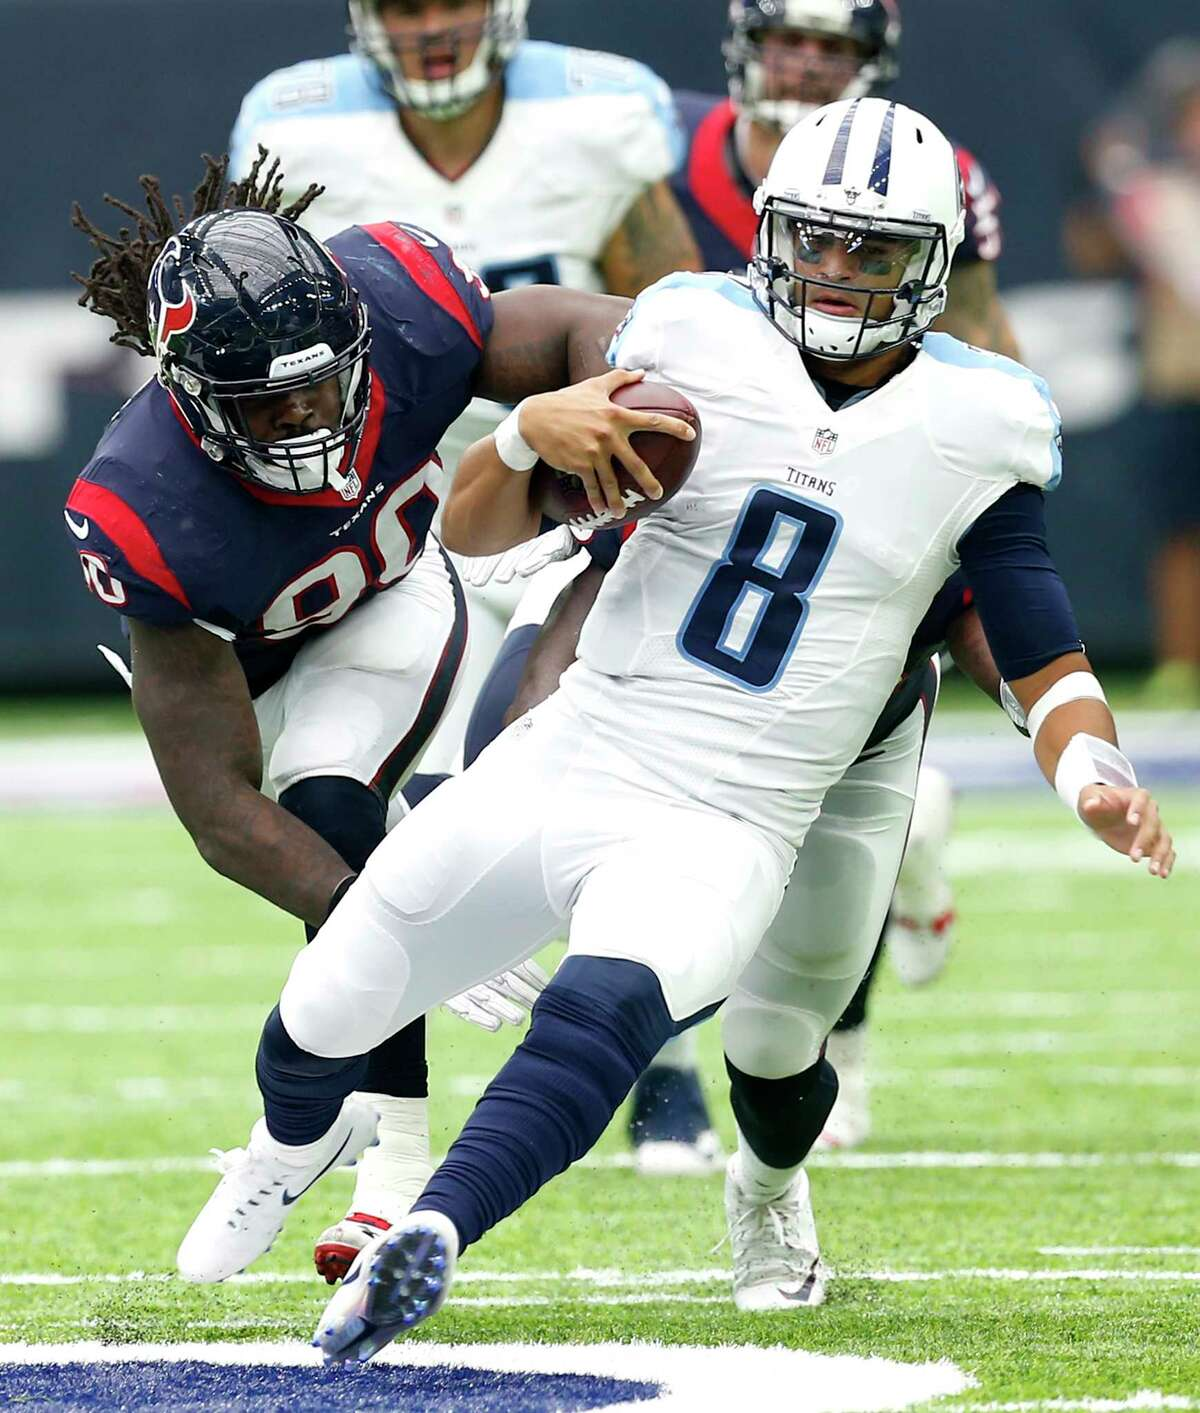 PHOTOS: McClain preview Texans-Titans Texans defensive end Jadeveon Clowney pursues Titans quarterback Marcus Mariota during a 2016 game at NRG Stadium. Browse through the photos to see a preview of the Texans' Sunday afternoon game against divisional rival Tennessee Titans.